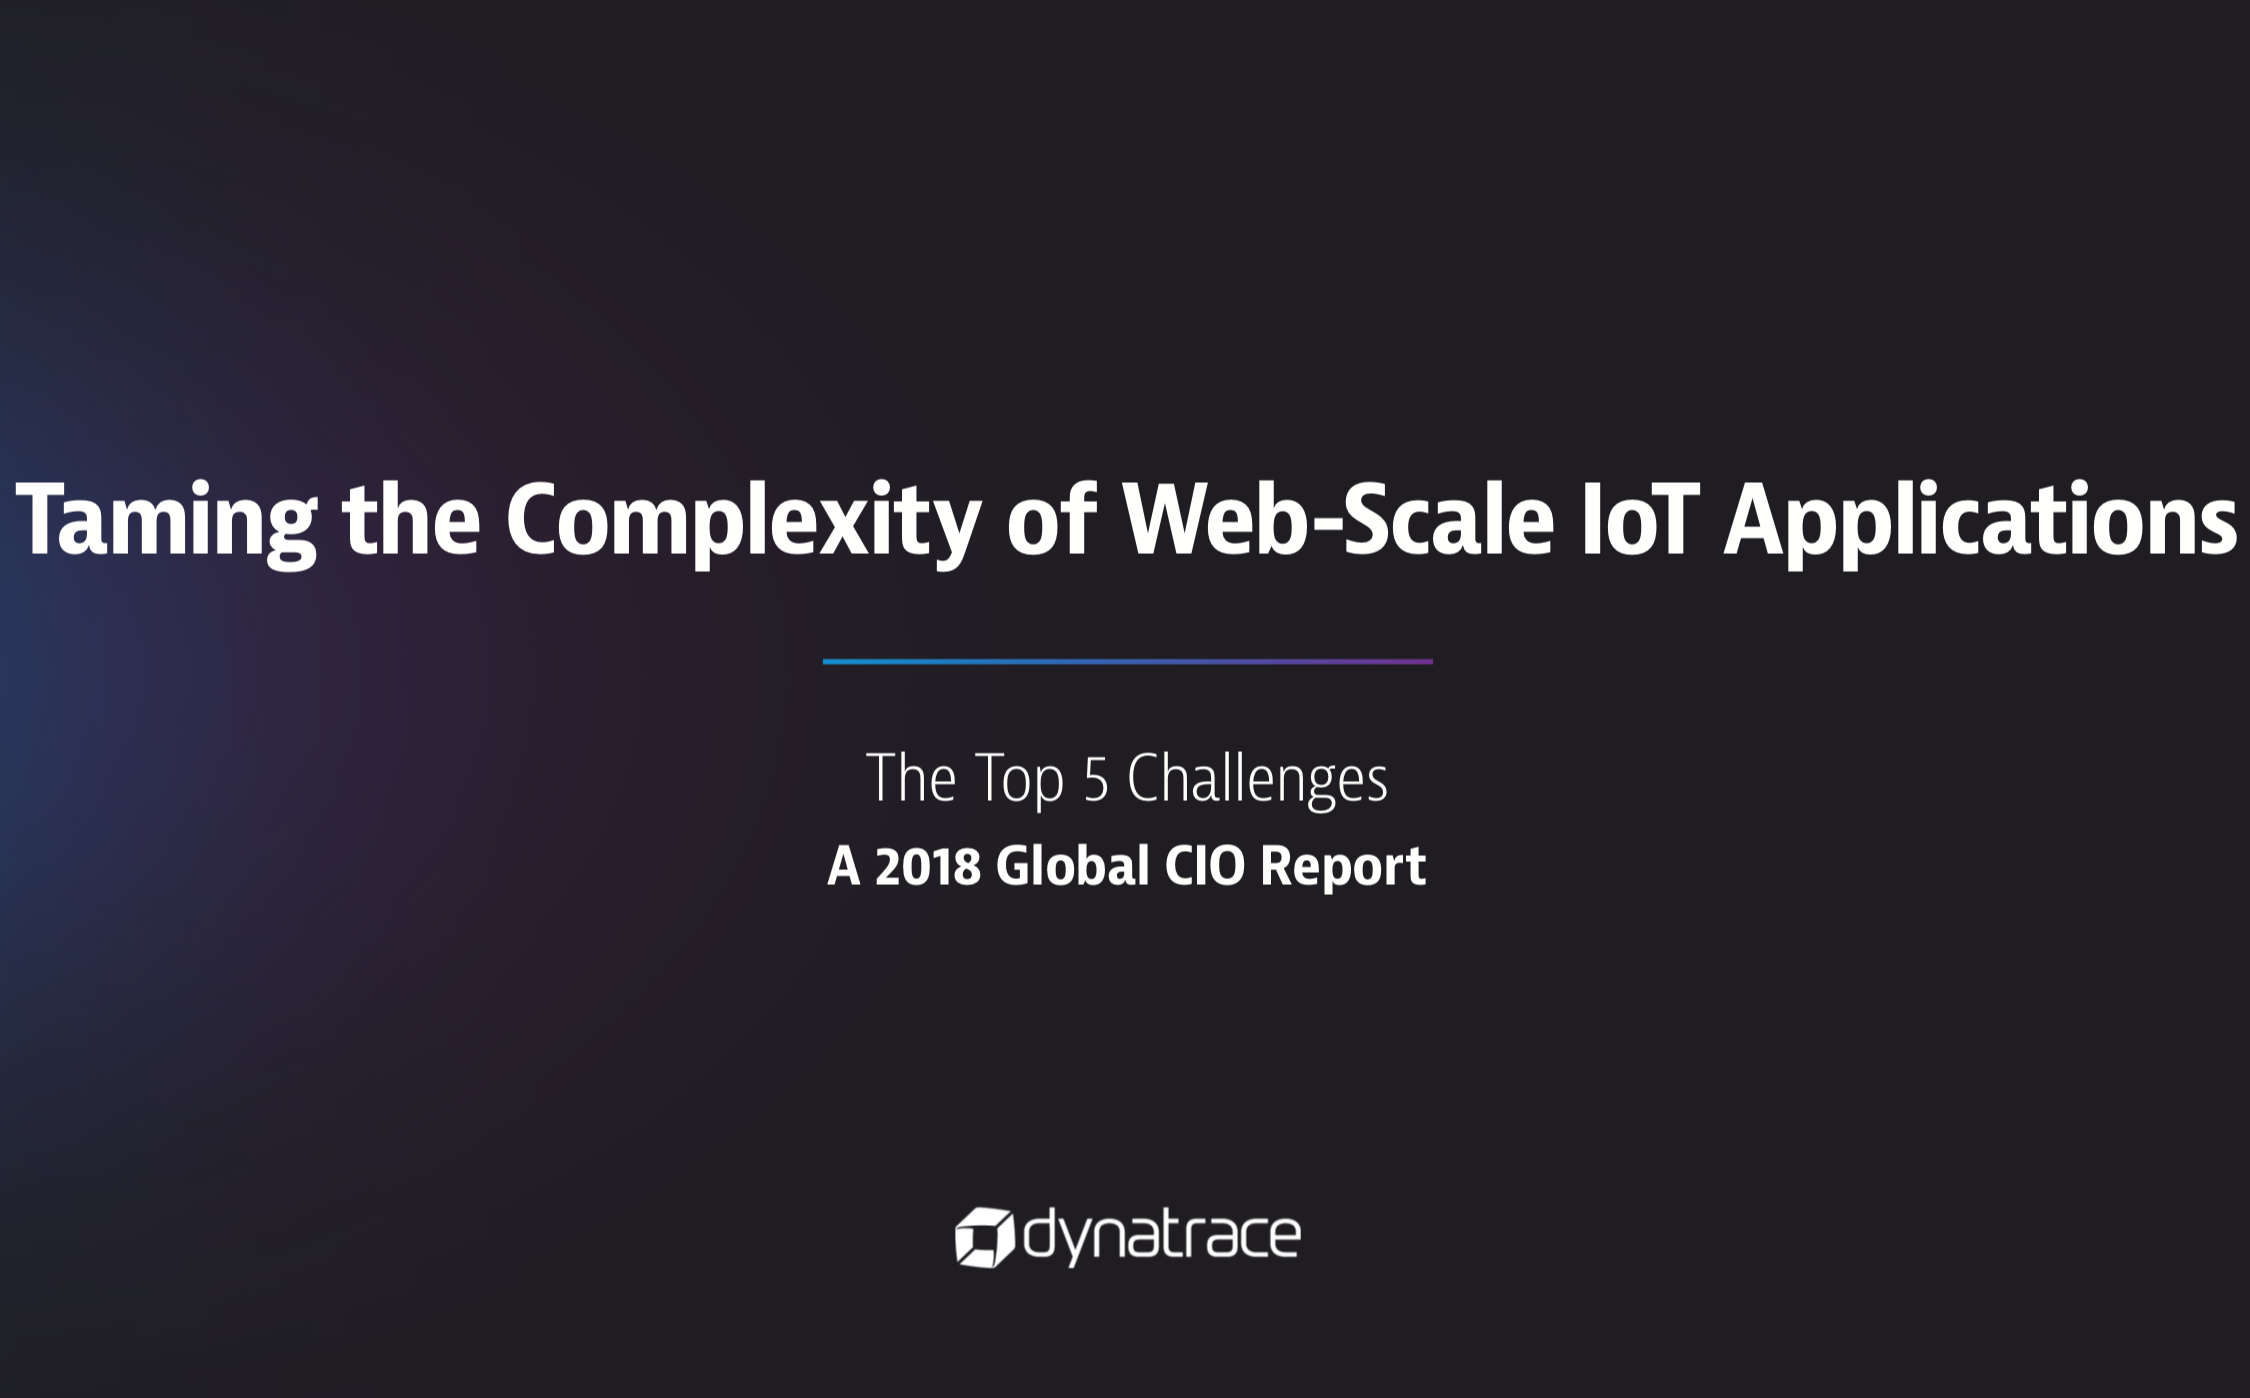 Taming the Complexity of Web-Scale IoT Applications